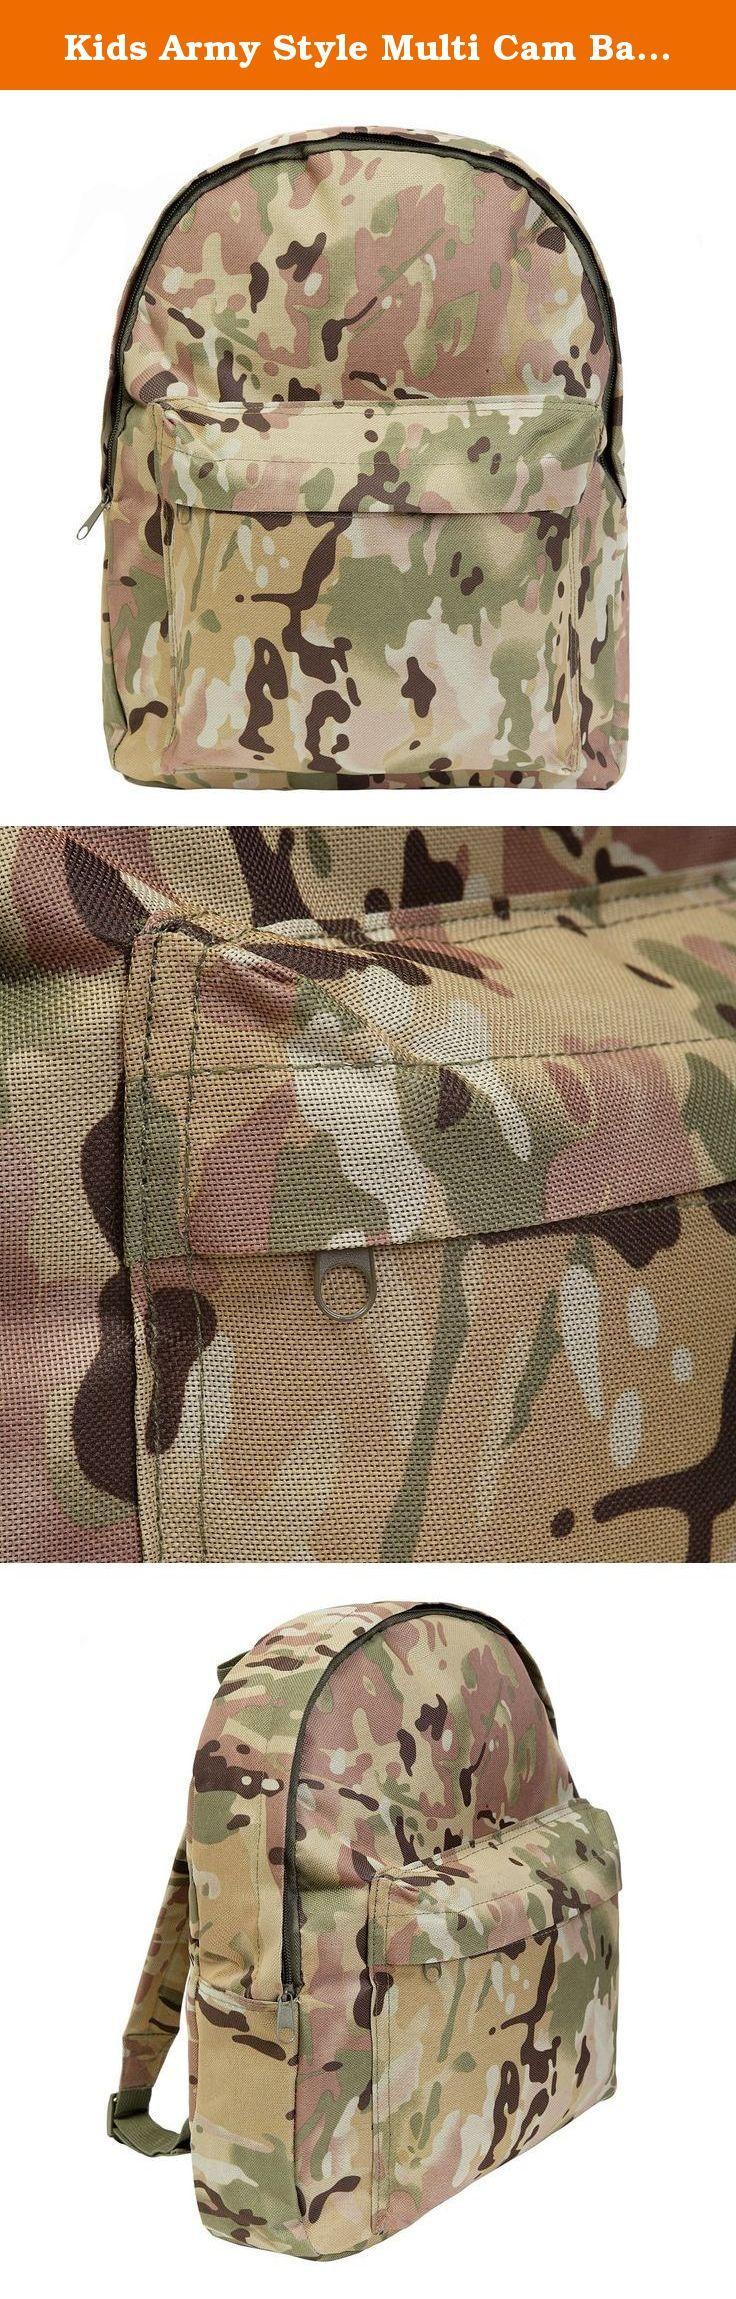 Kids Army Style Multi Cam Backpack 15ltr Camouflage Rucksack Bag. When you are heading out on a mission, you need a rucksack that you can rely on. With the Kids Army MTP Camo Rucksack you will be able to carry all of your favourite army play kit in comfort.